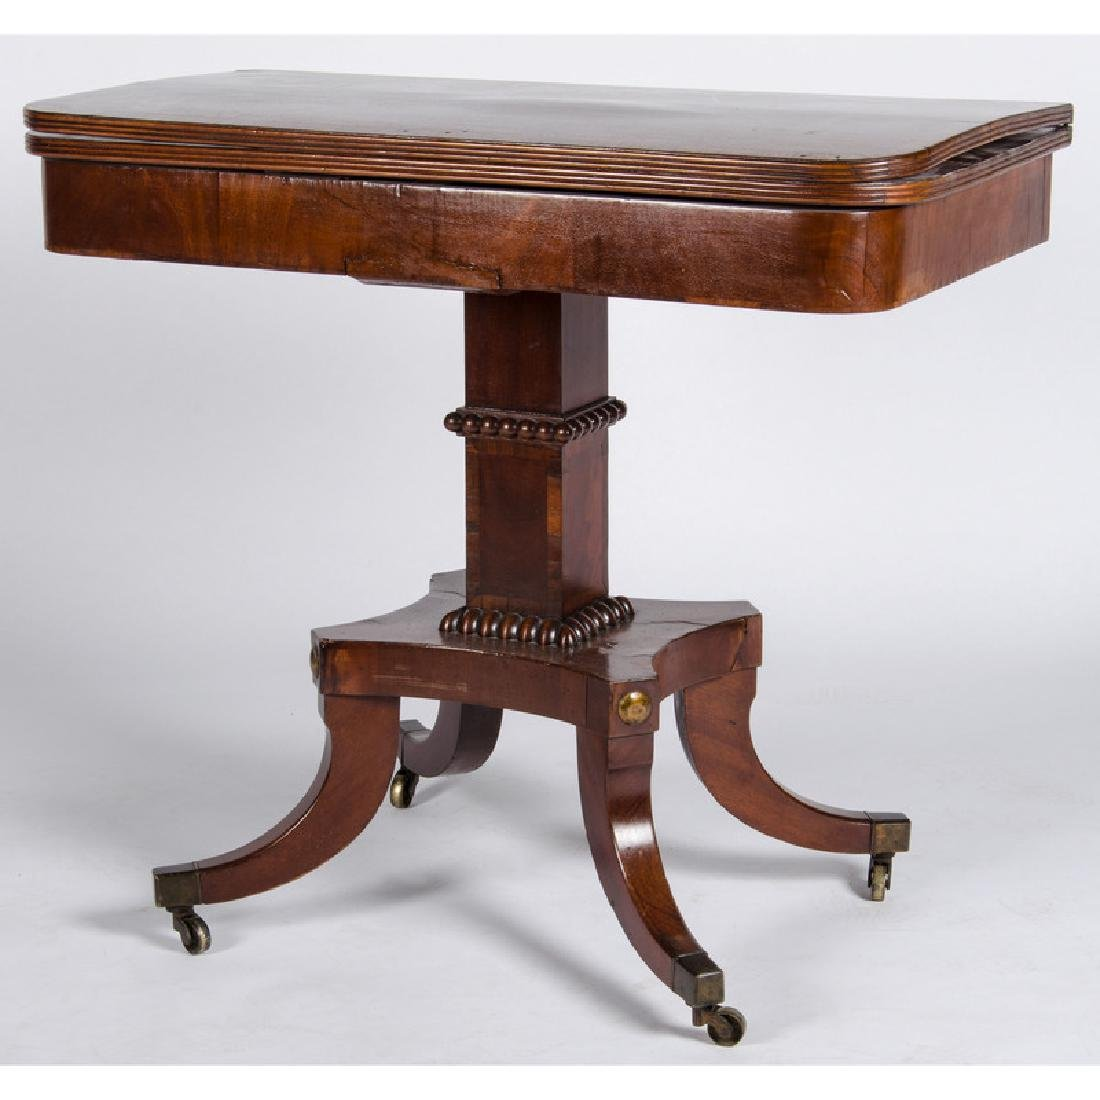 Classical Mahogany Game Table - 2